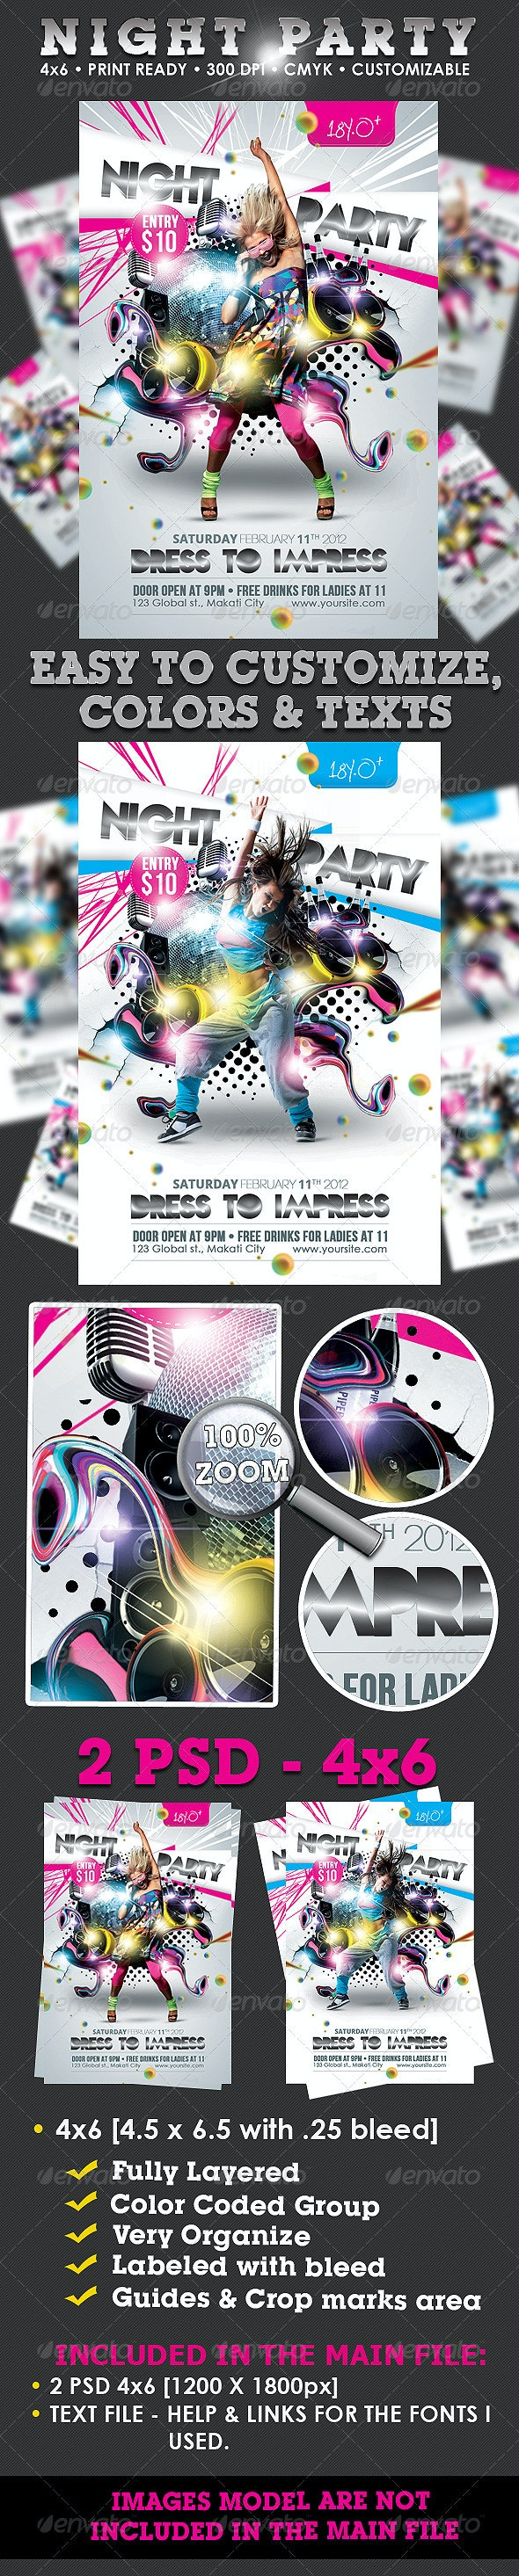 Night Party Flyer Template - Clubs & Parties Events